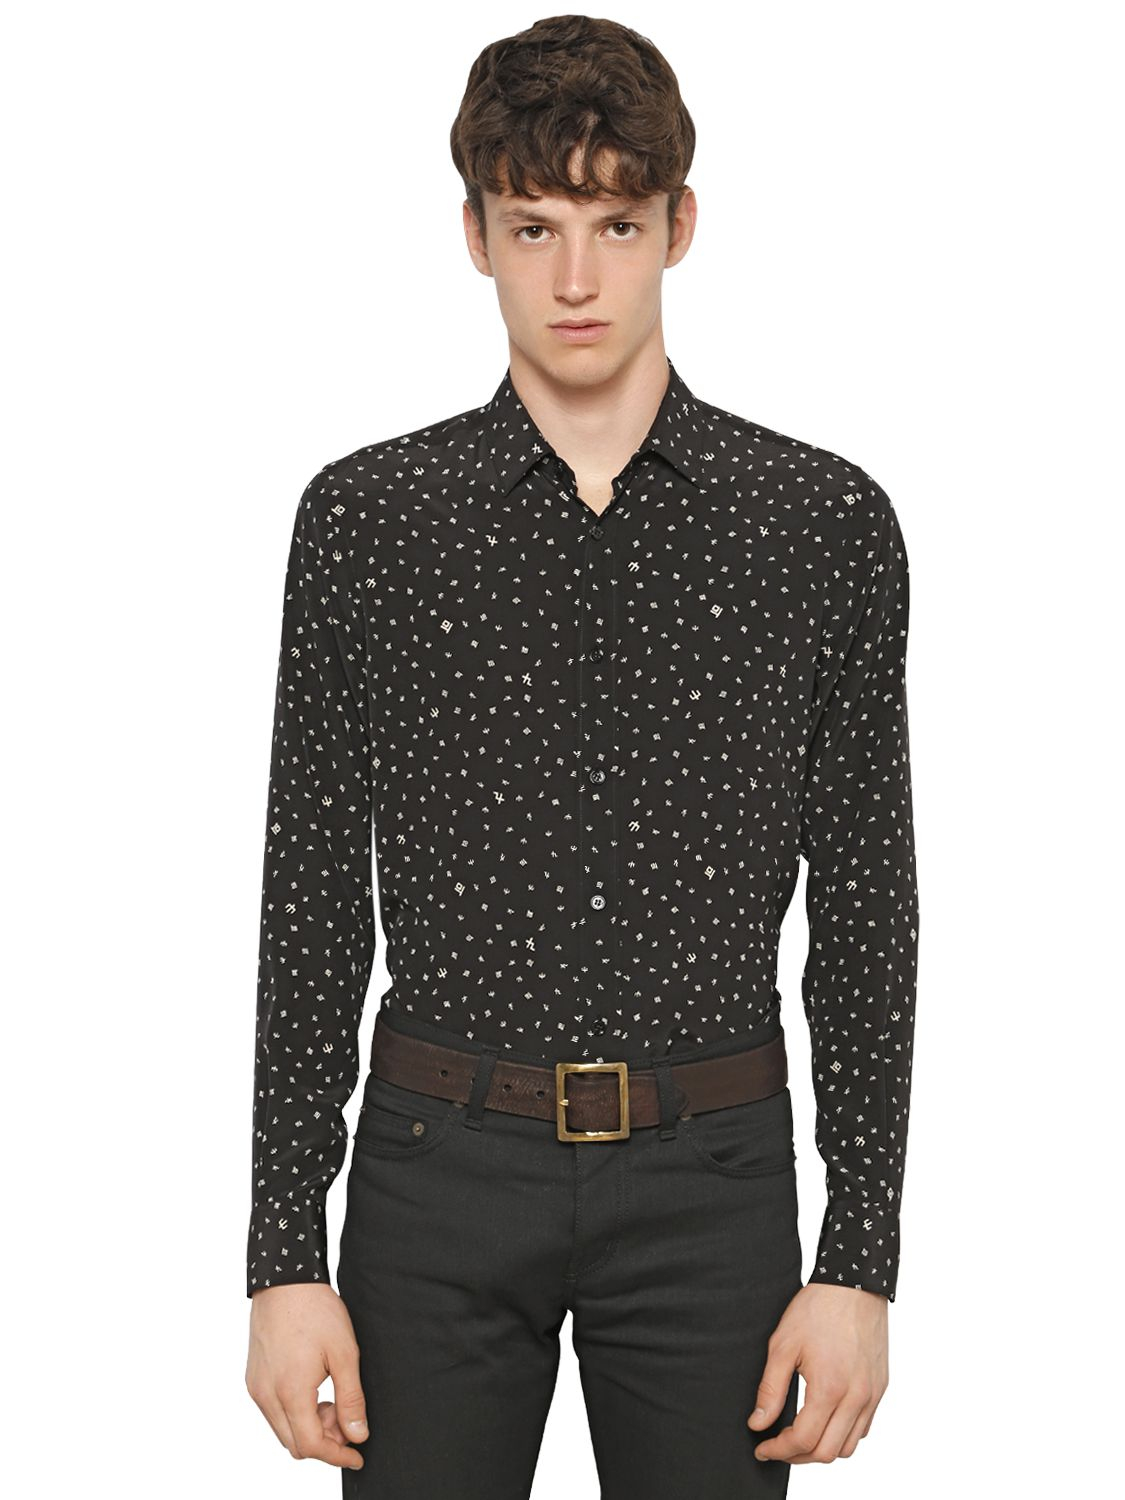 saint laurent black white polka dot shirt in black for